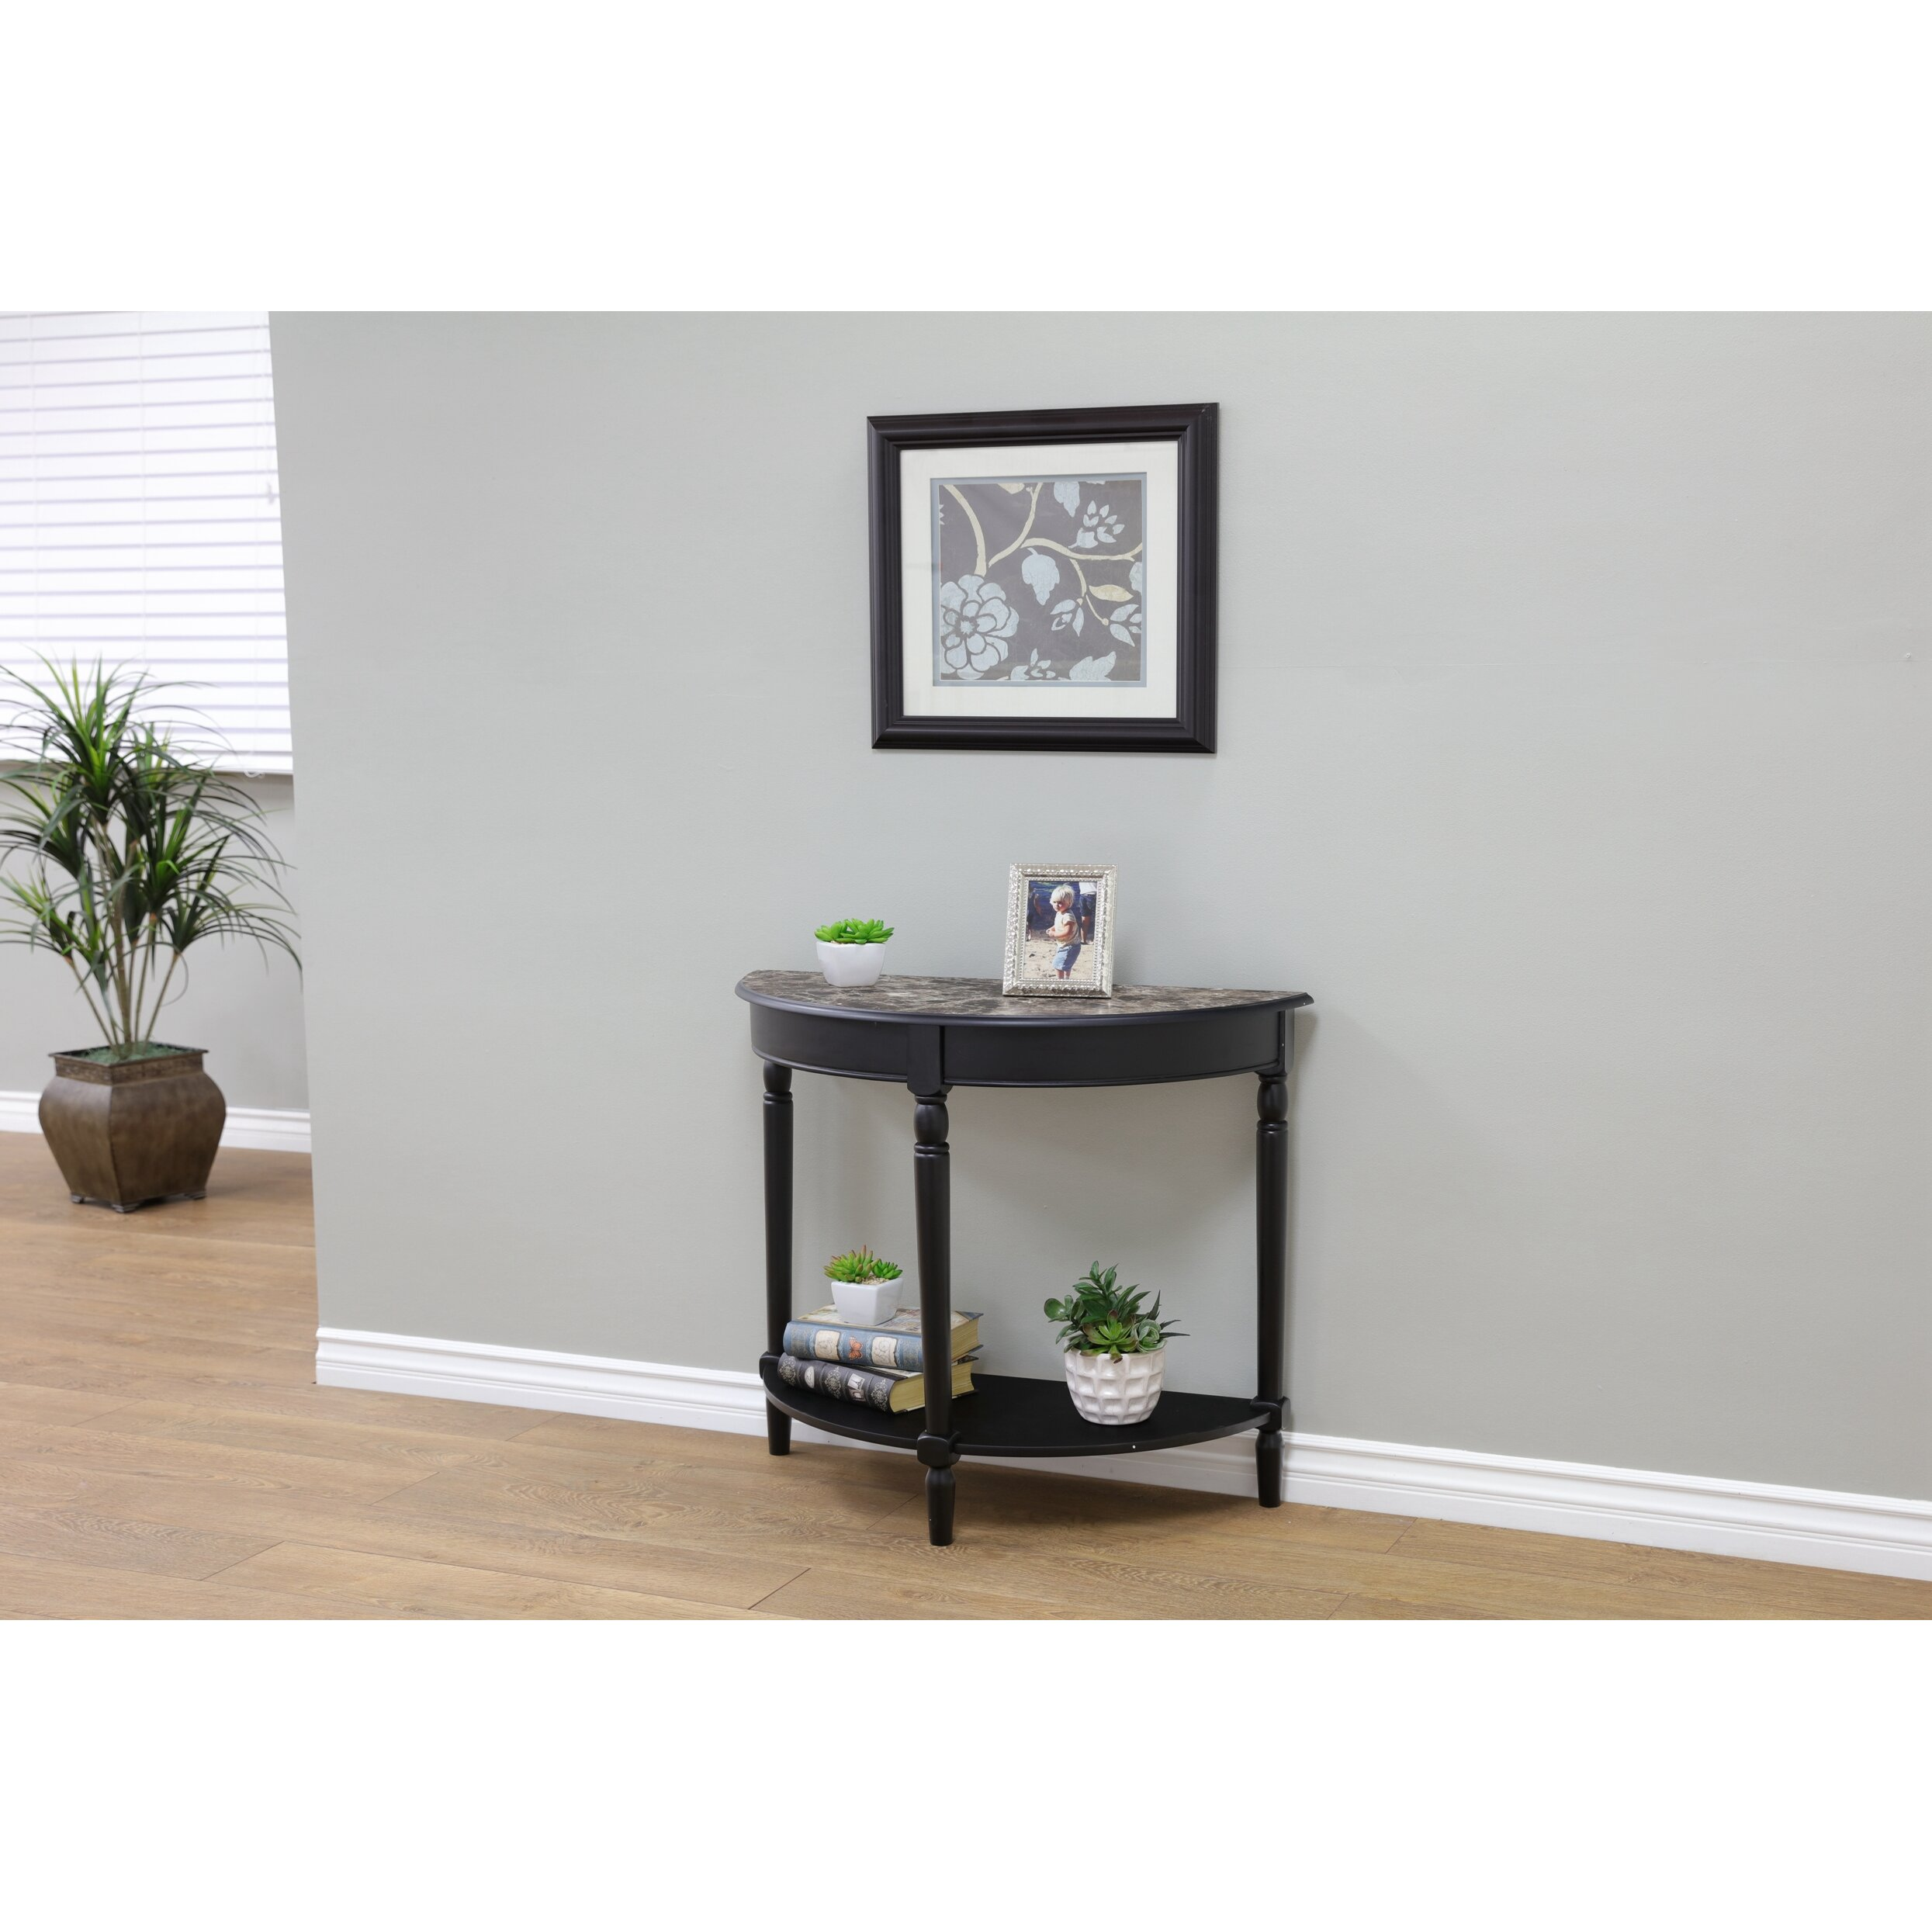 Foyer Console Game : Mega home entryway console table reviews wayfair